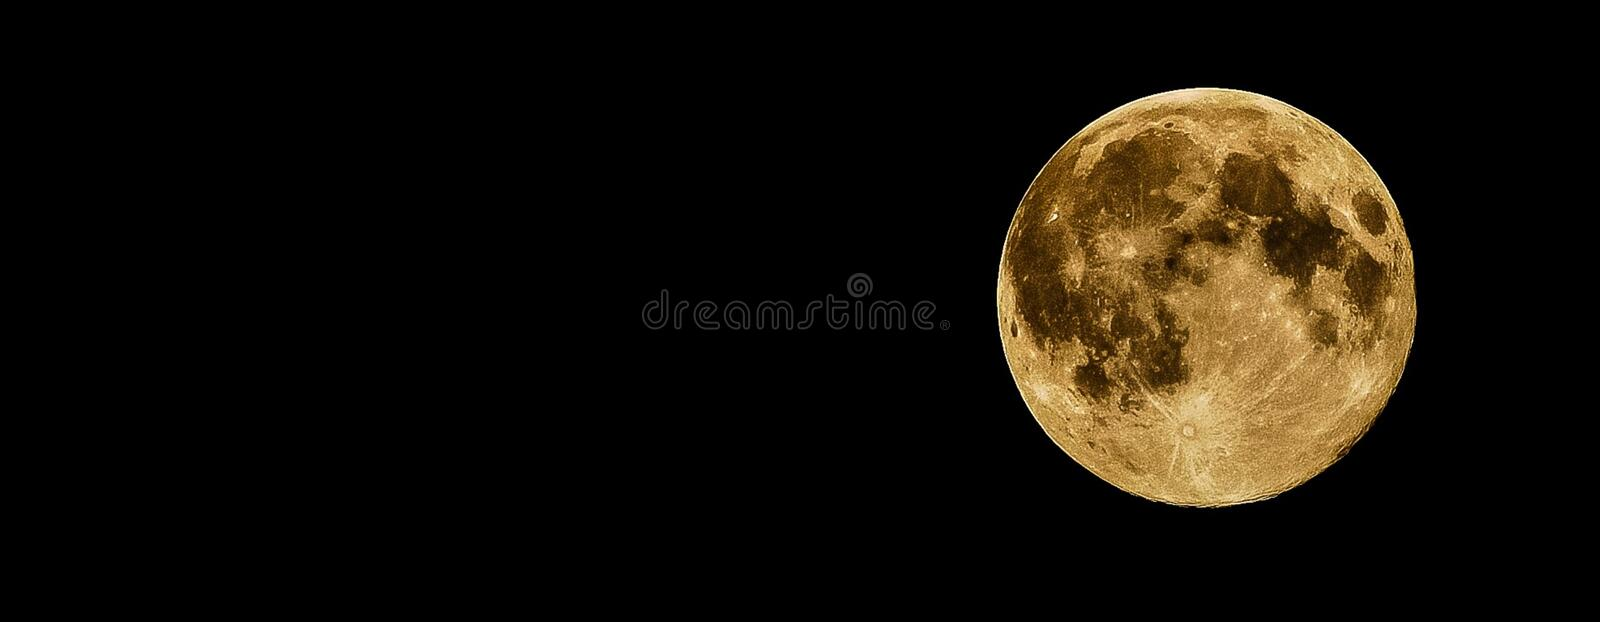 Full Moon during Night Time royalty free stock images